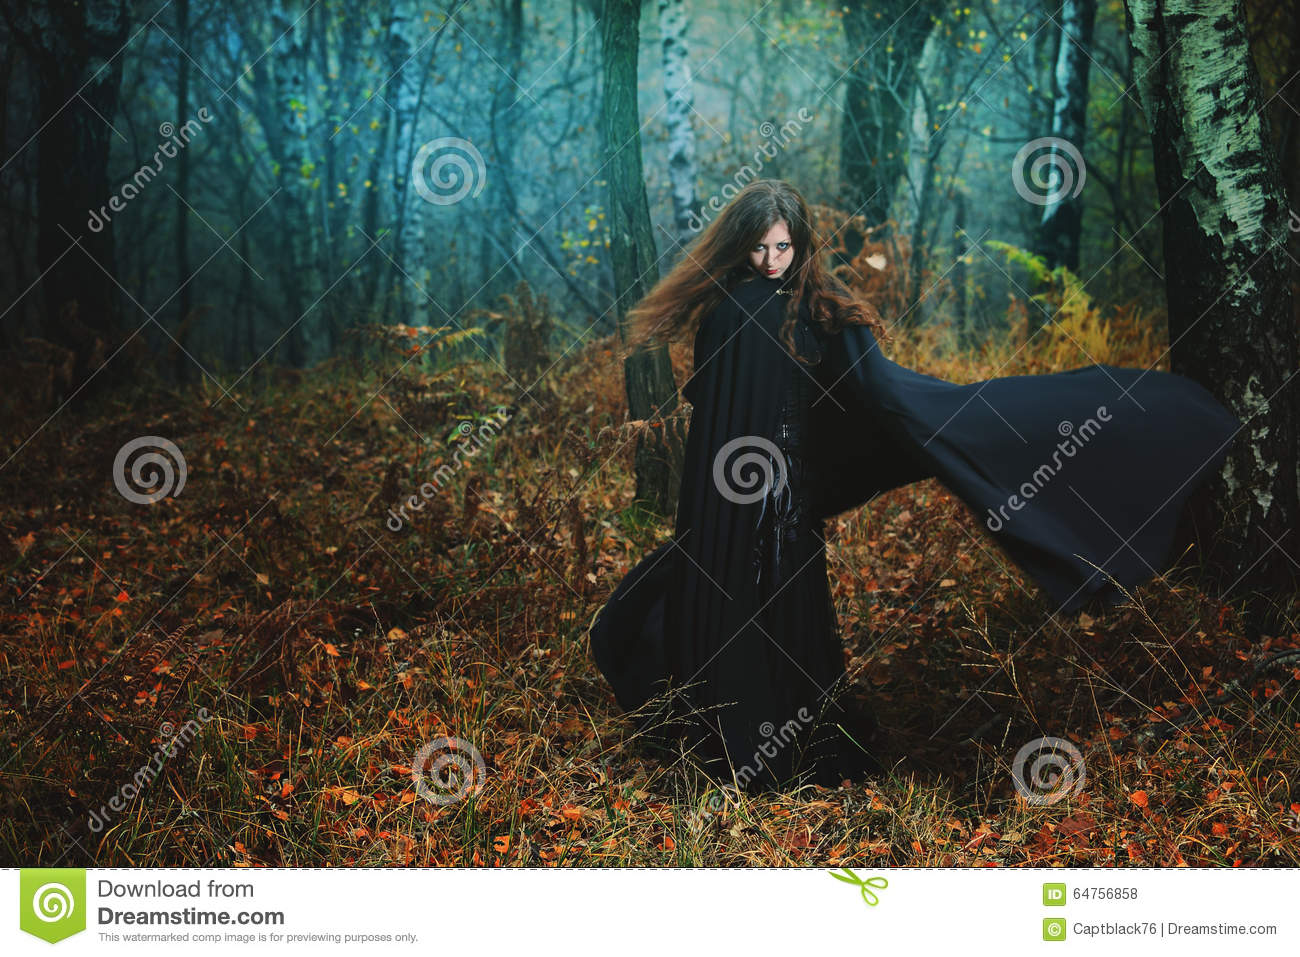 Mysterious woman walking in magical forest